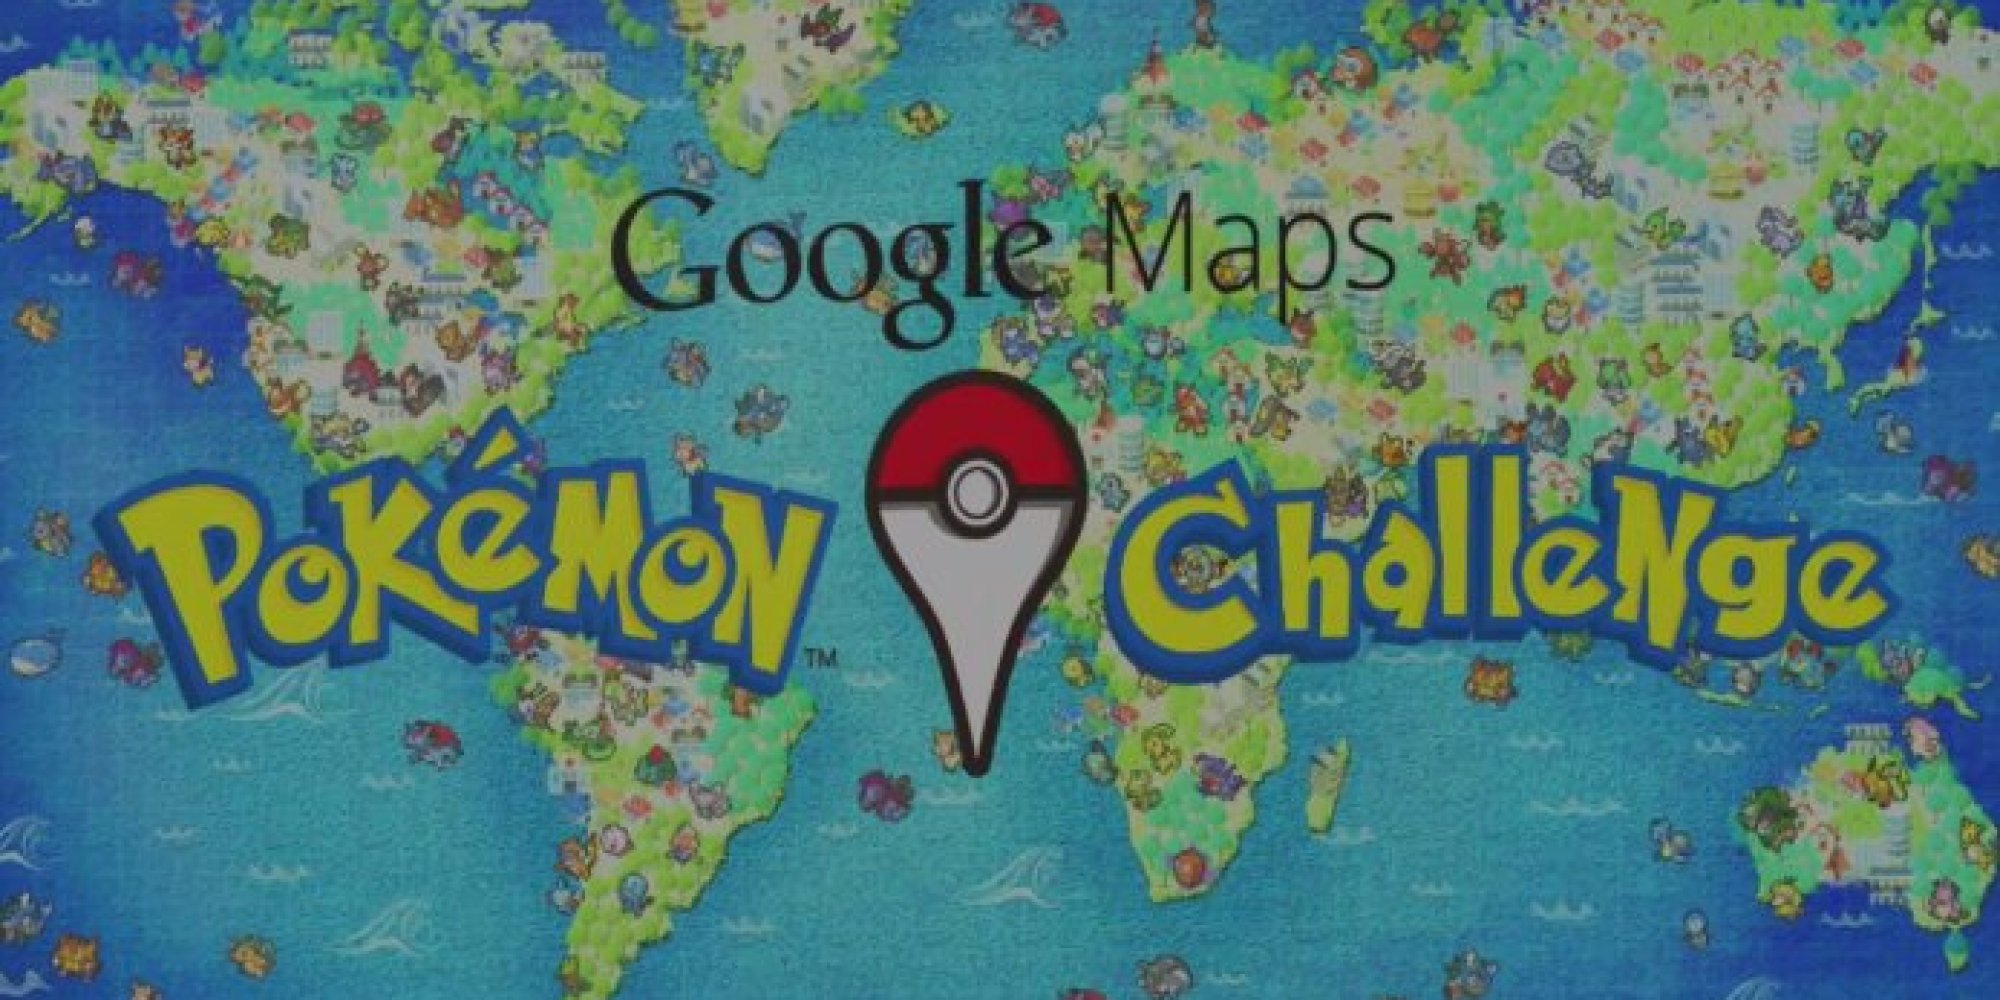 . google maps is taken over by pokémon in april fools' prank  huffpost